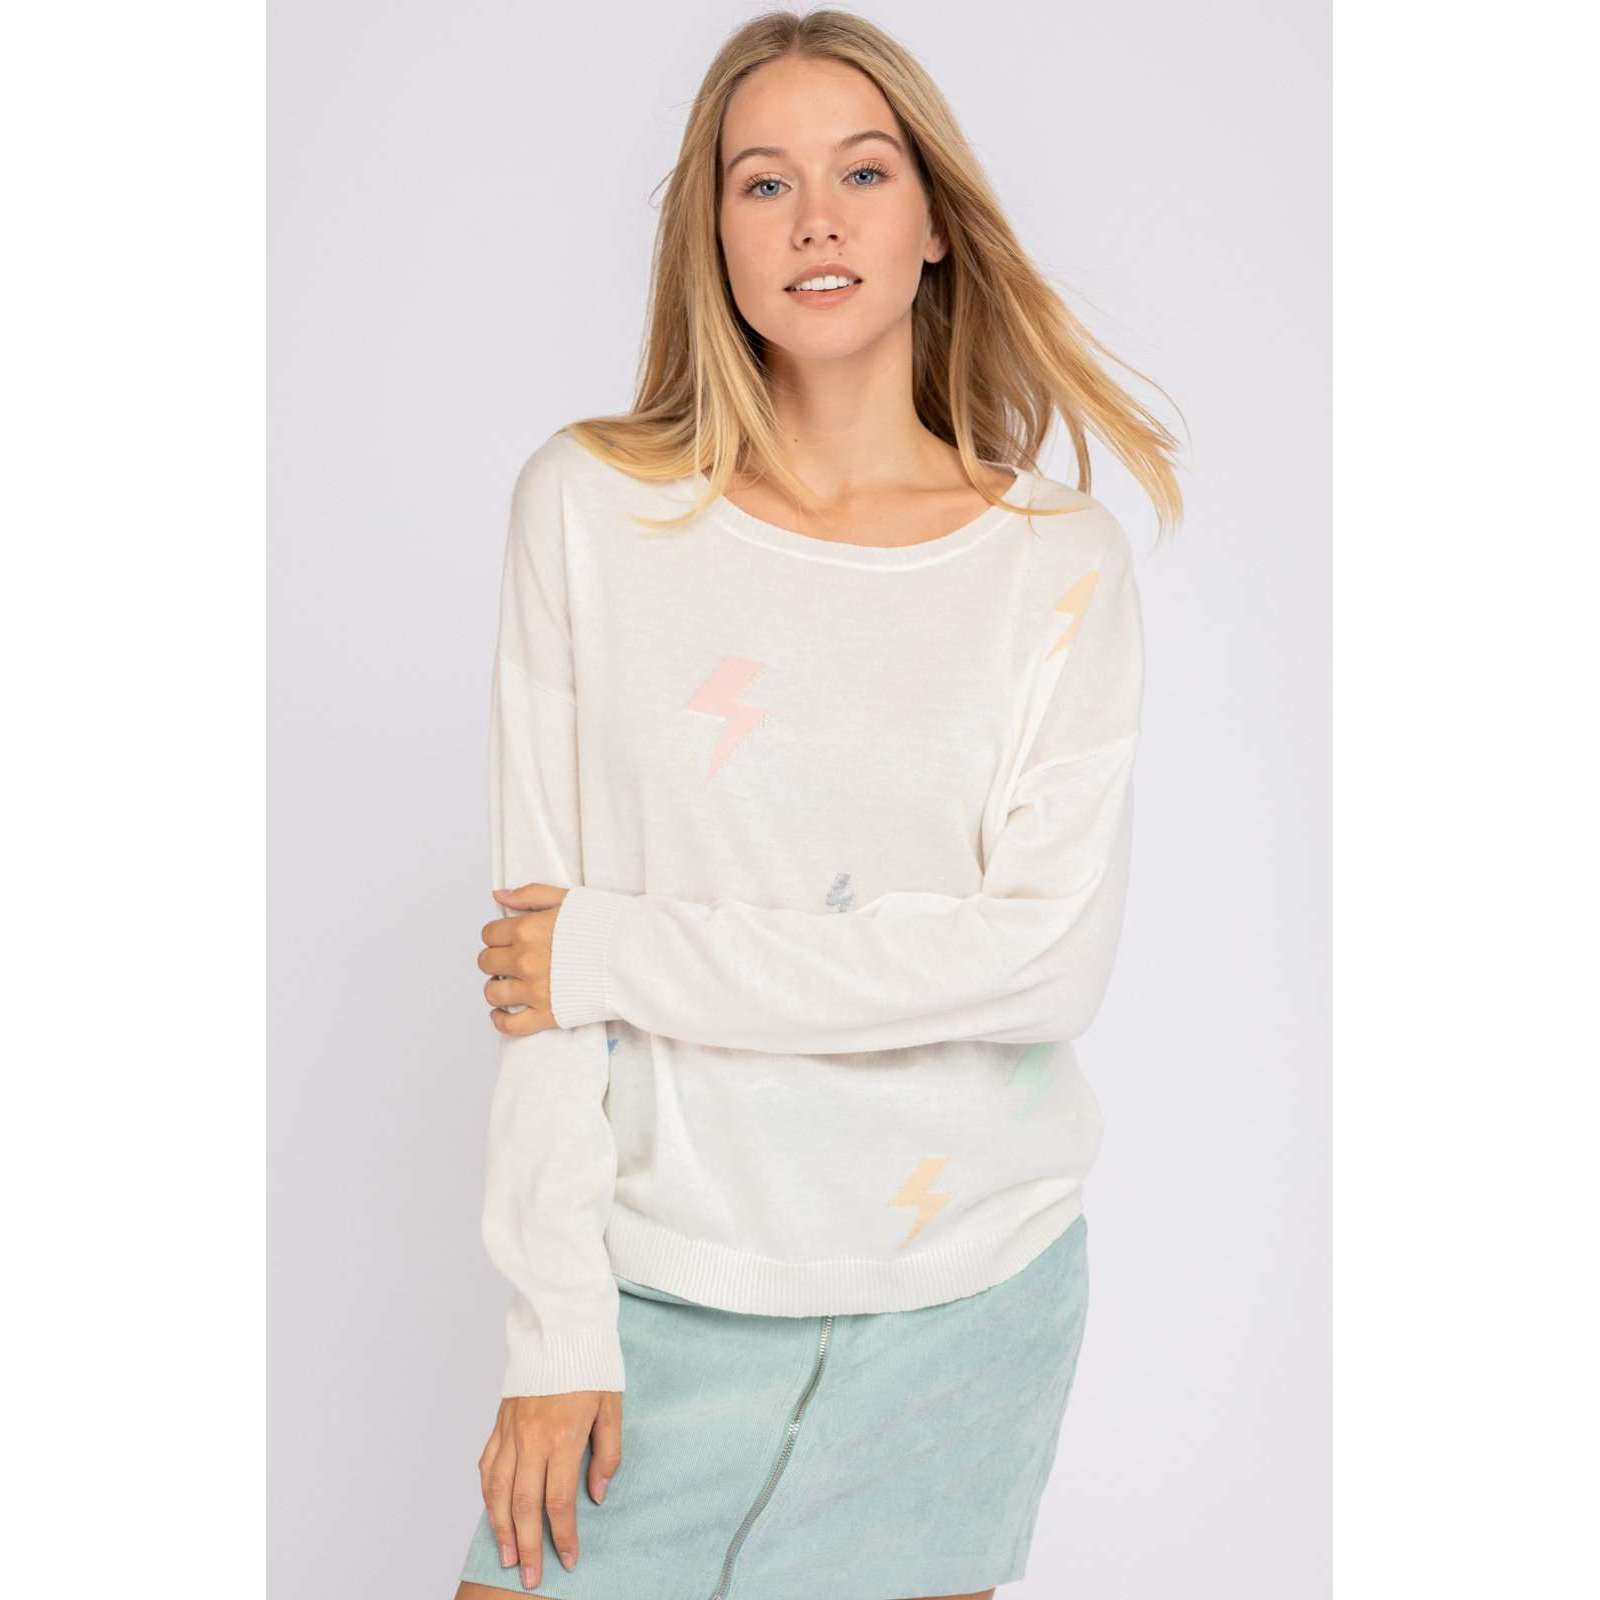 8.28 Boutique:8.28 Boutique,Le Lis Lightning Sweater,Tops